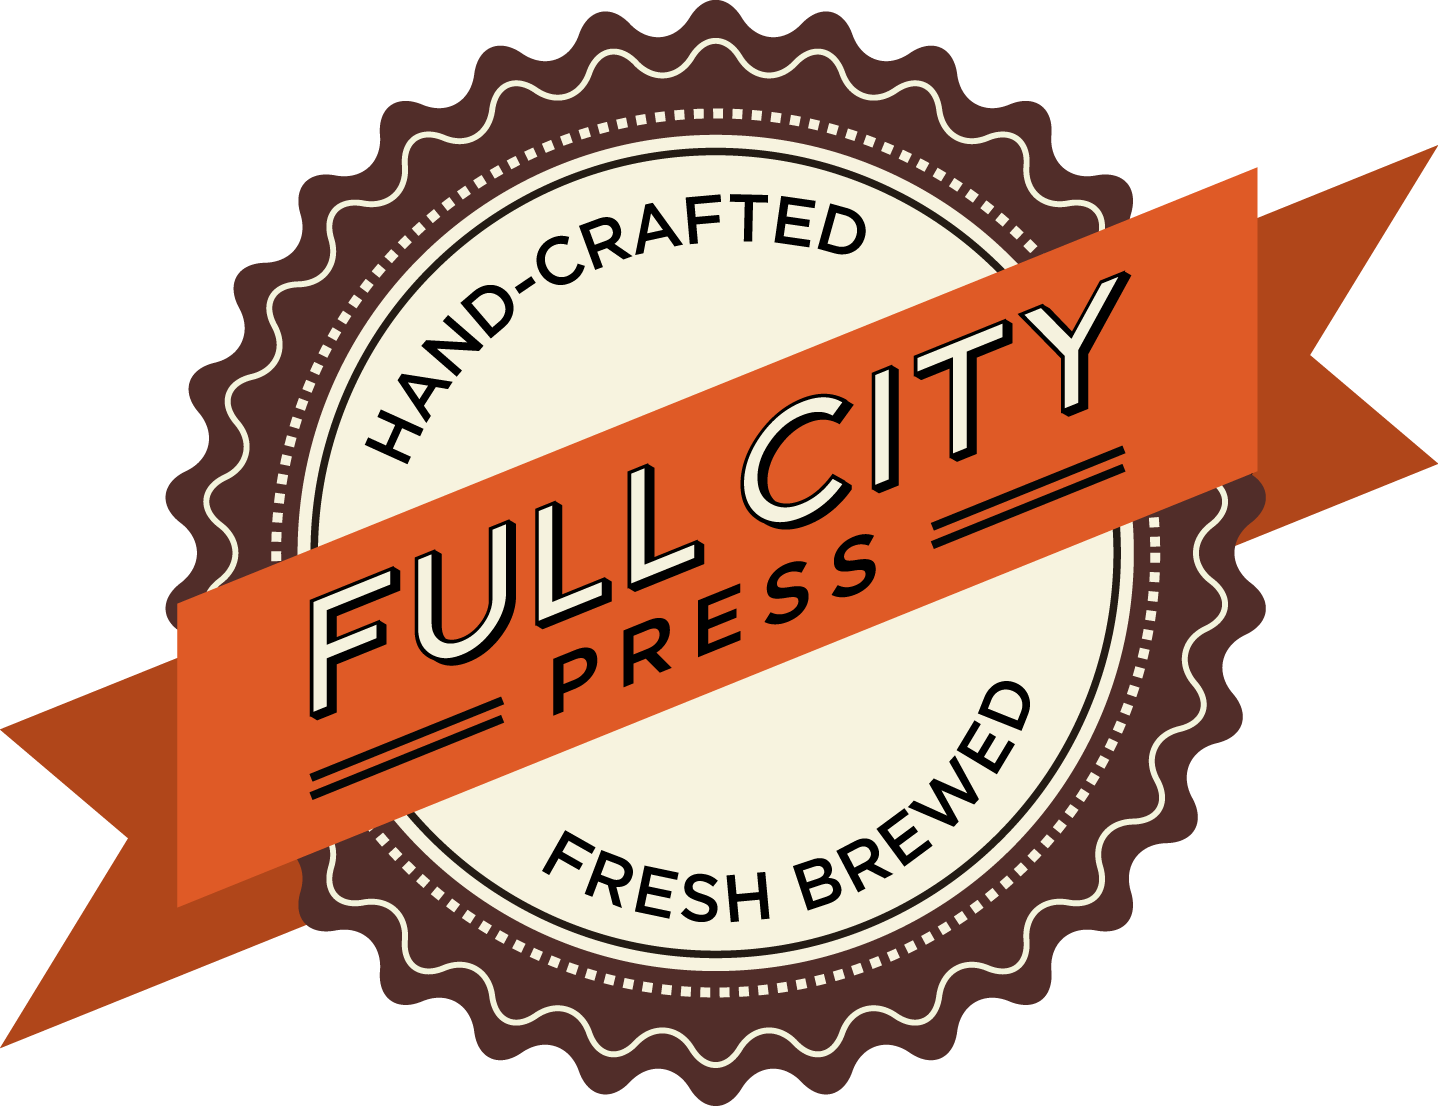 Full City Press